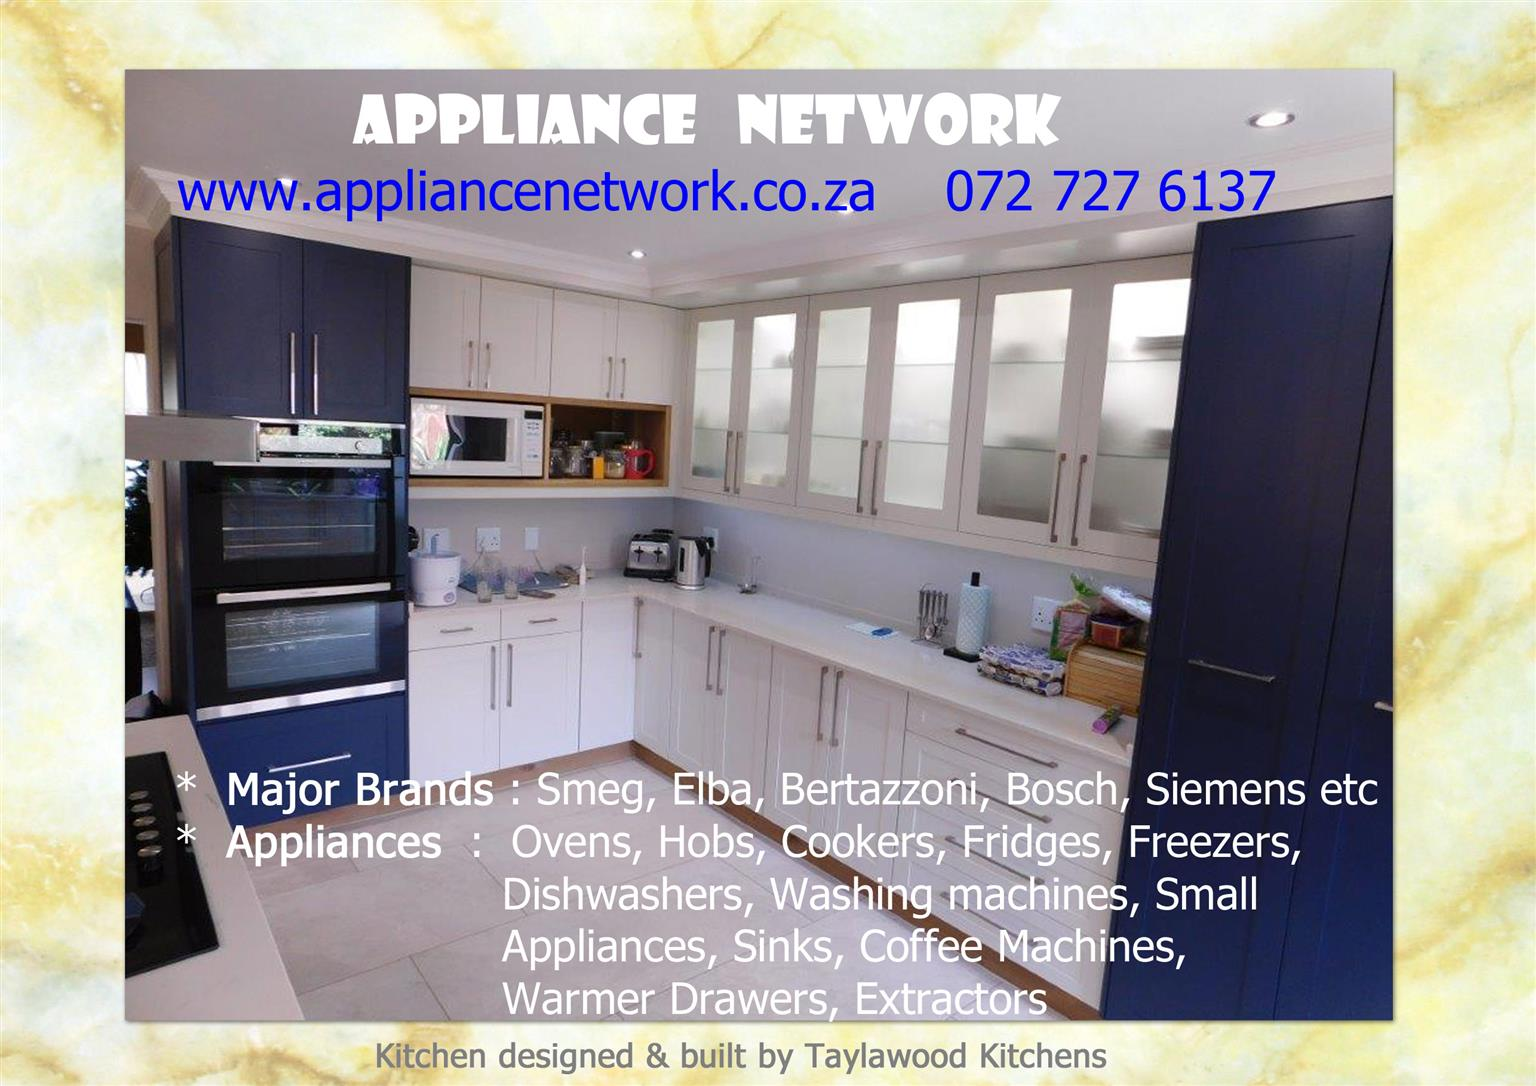 Appliance Network --- your no. 1 home appliance store